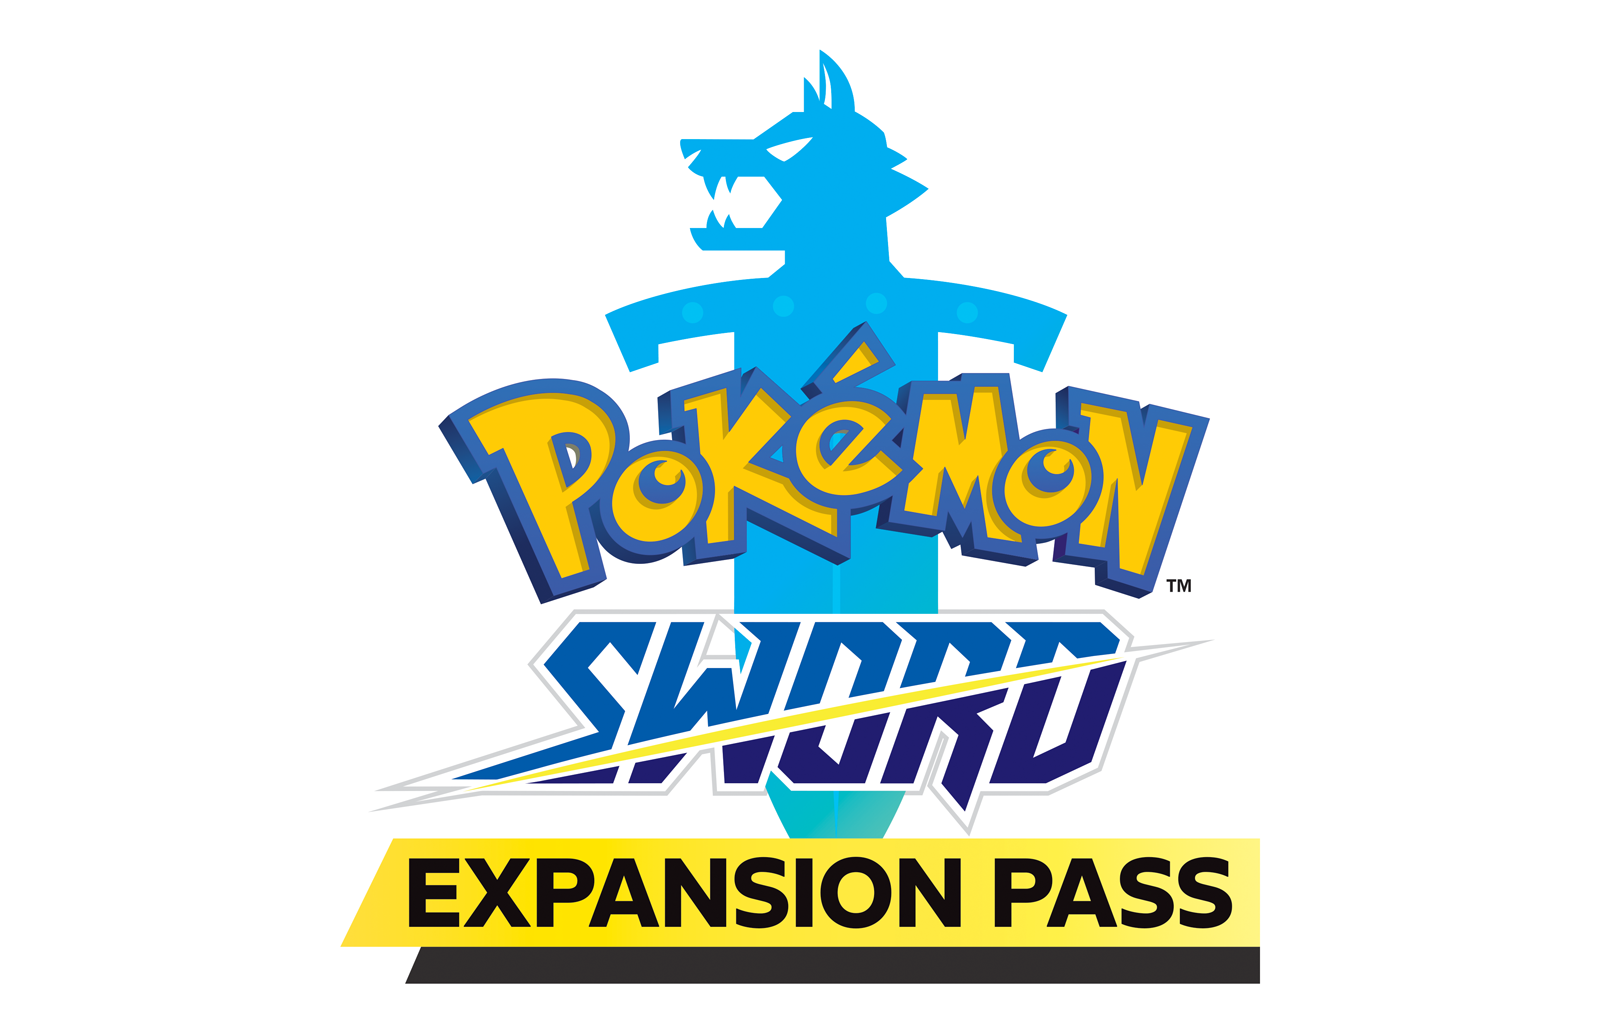 Pokemon Sword Expansion Pass Logo